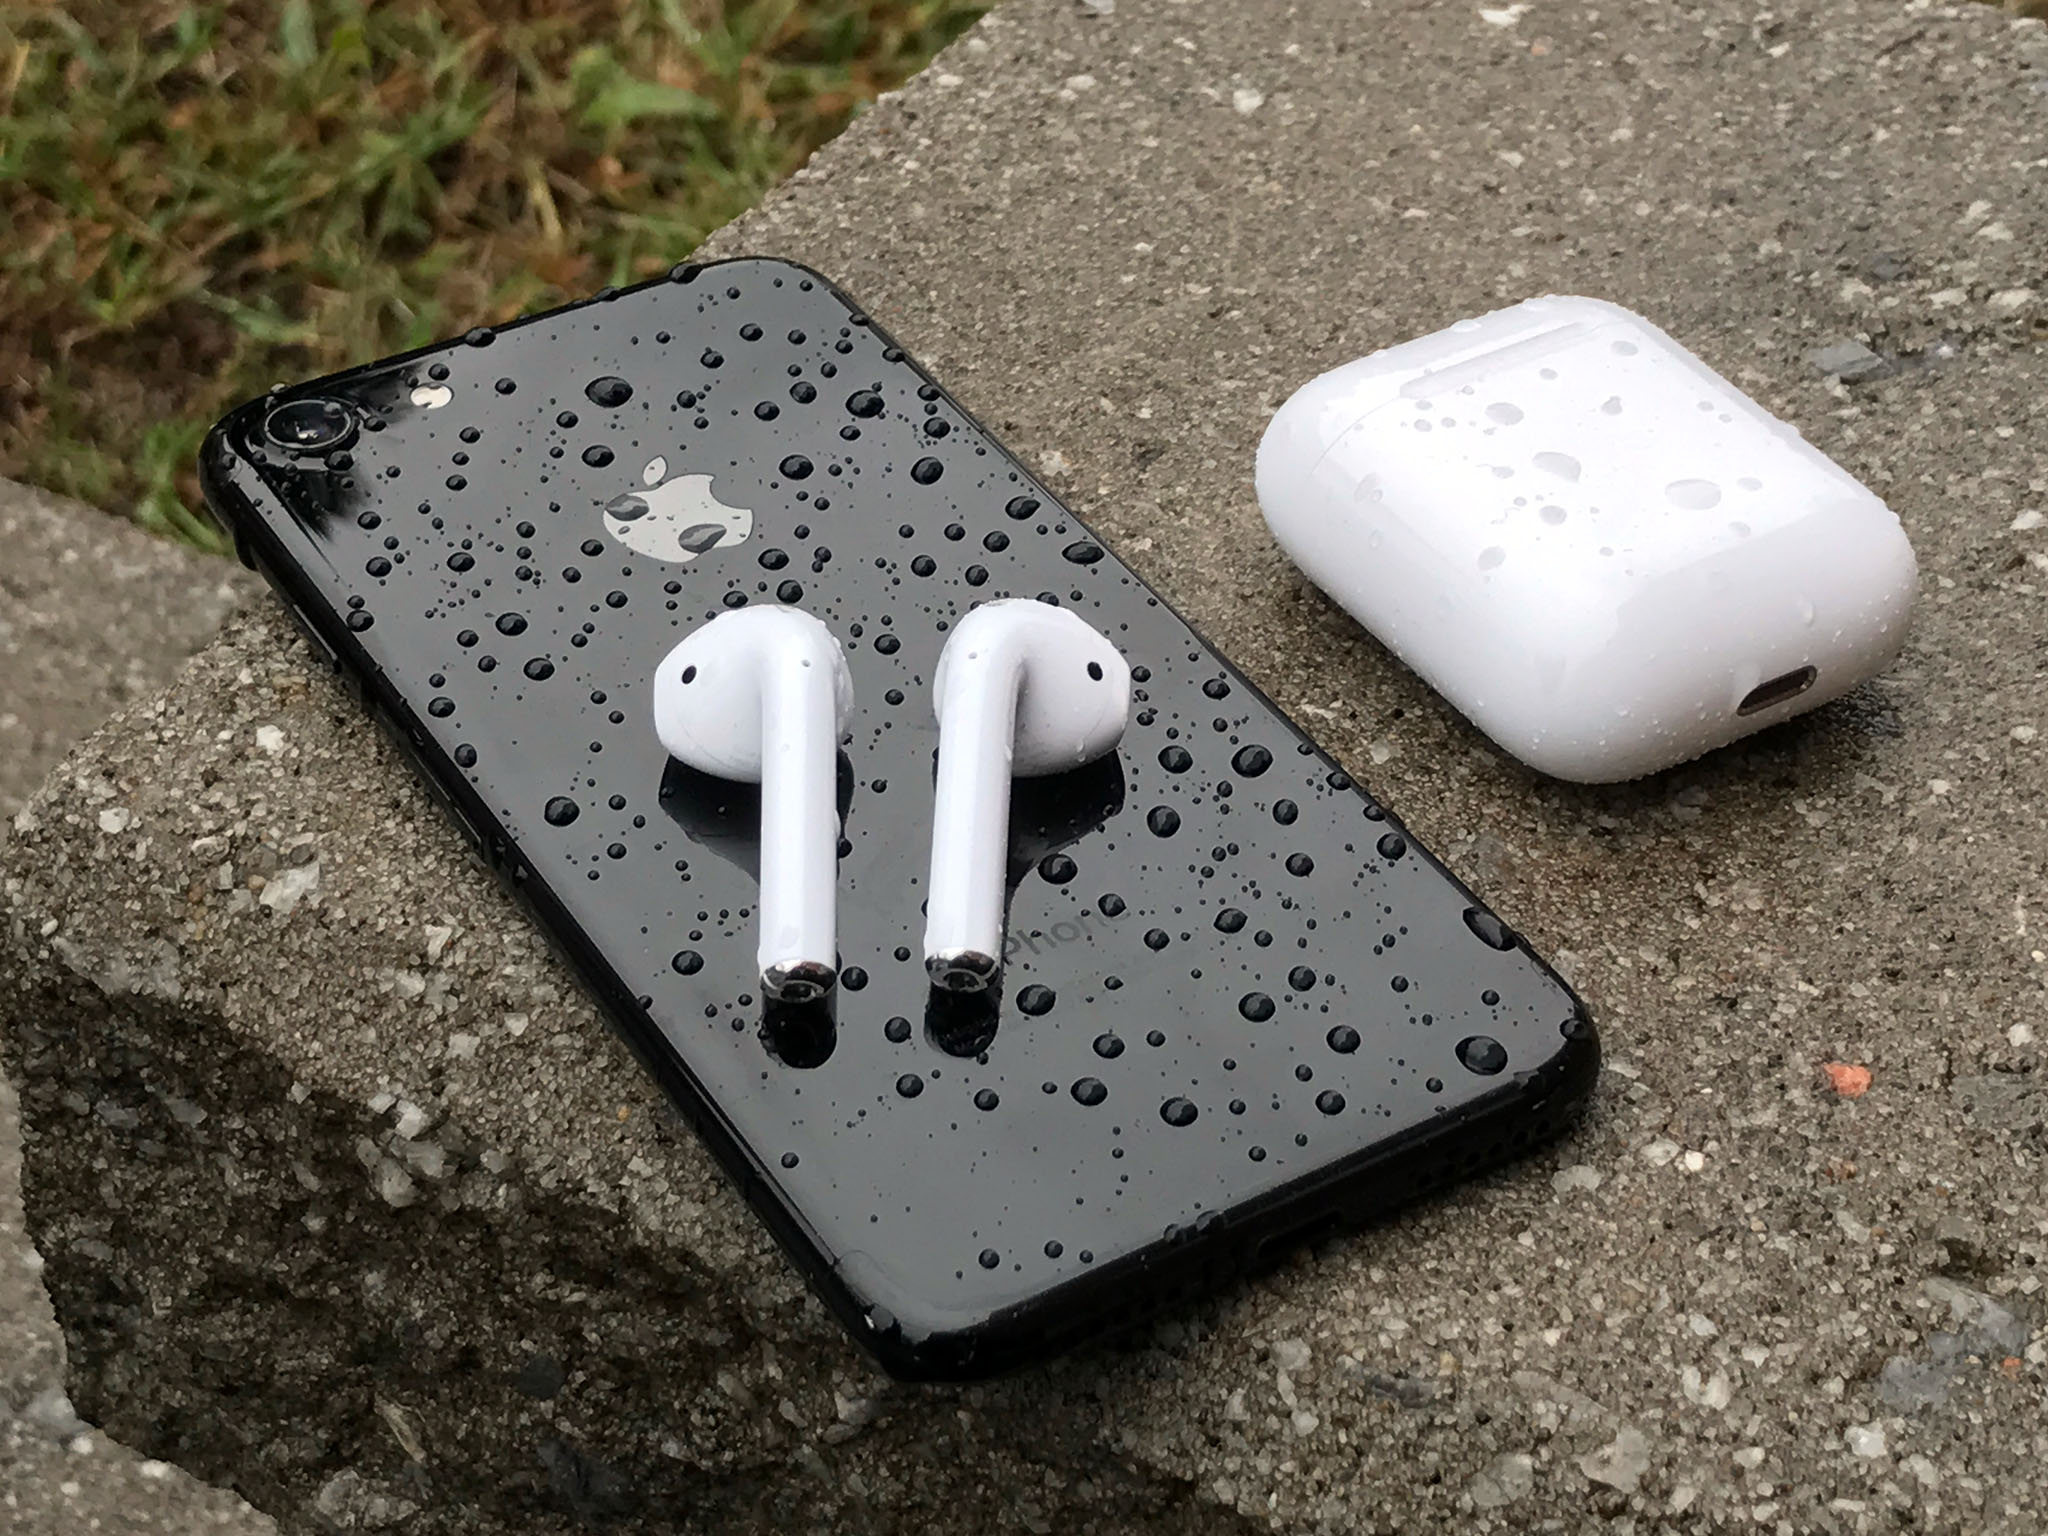 How to troubleshoot and reset your AirPods | iMore